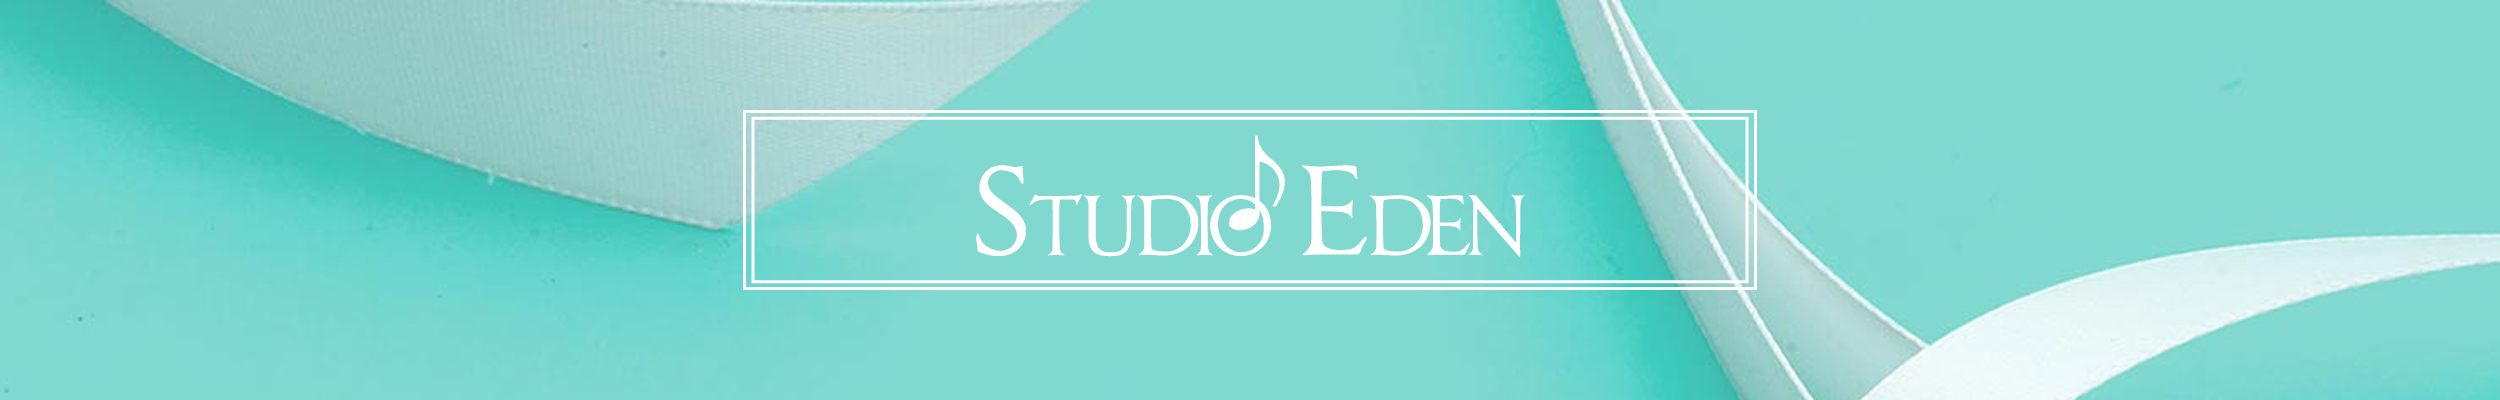 STUDIO EDEN INC.